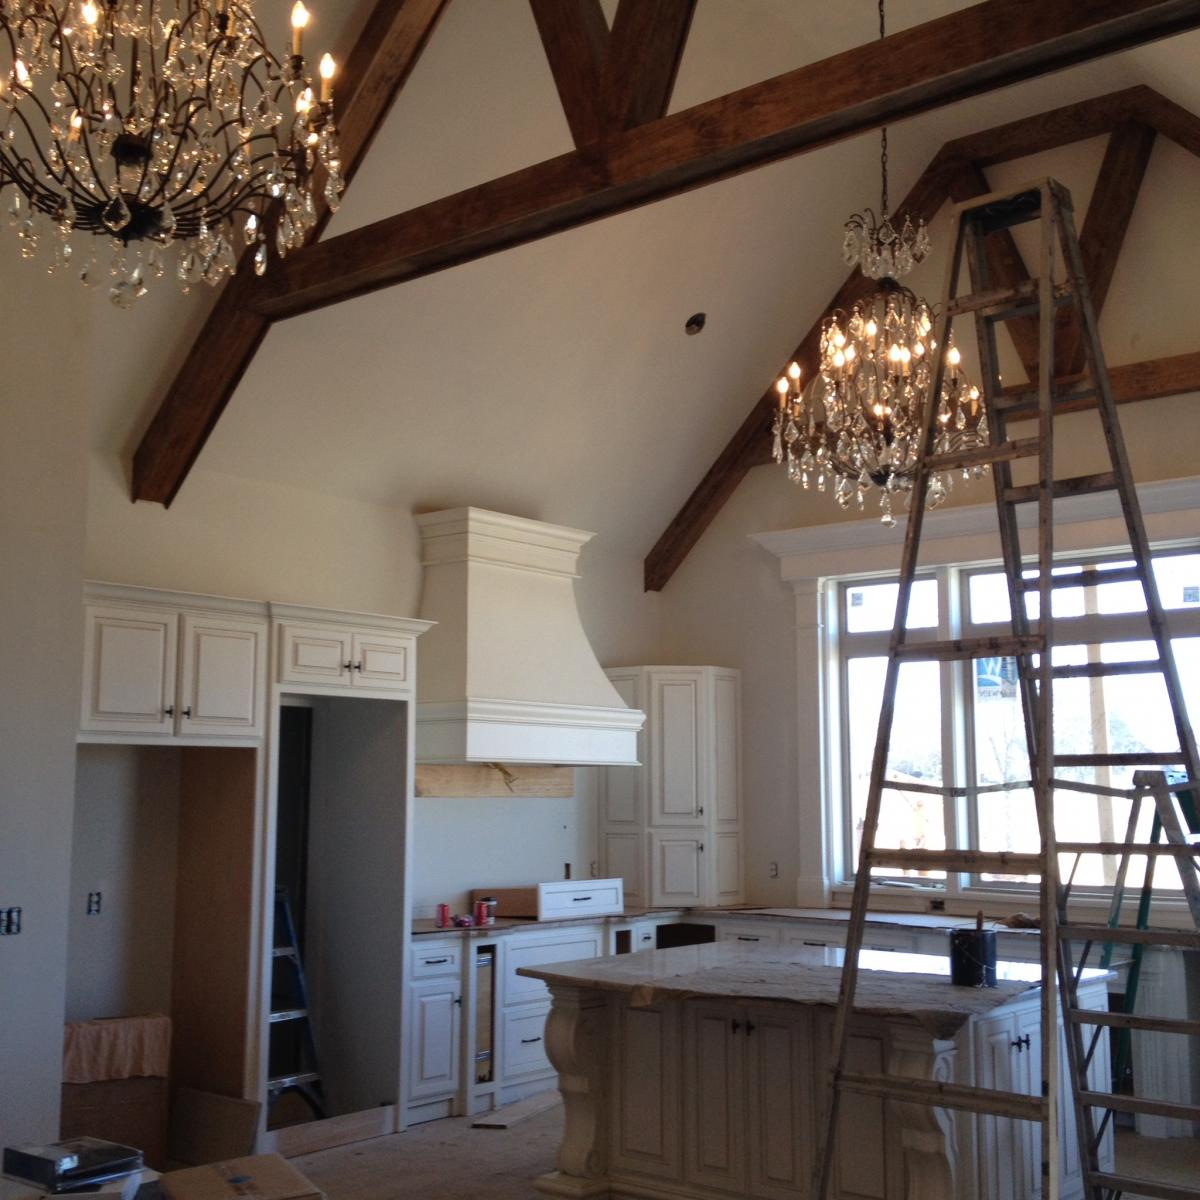 Cathedral Ceilings In Kitchen With Wood Beams Members Gallery The Greenleaf Miniature Community